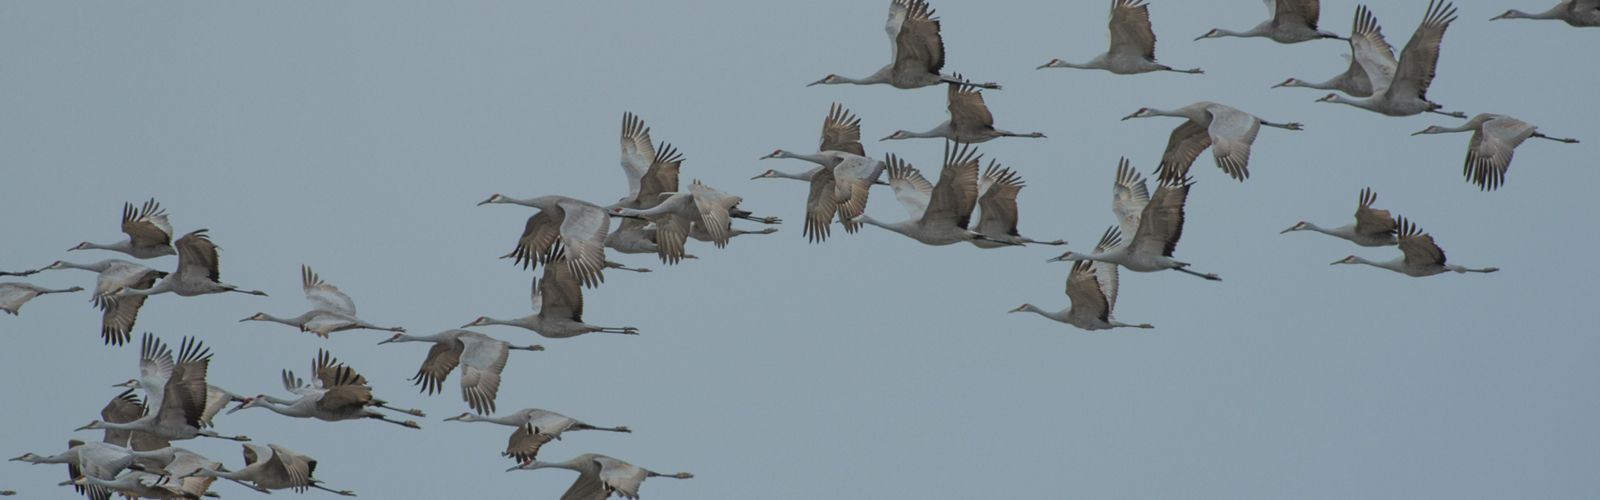 The long-distance migration of Sandhill crane is one of the greatest spectacles of nature.